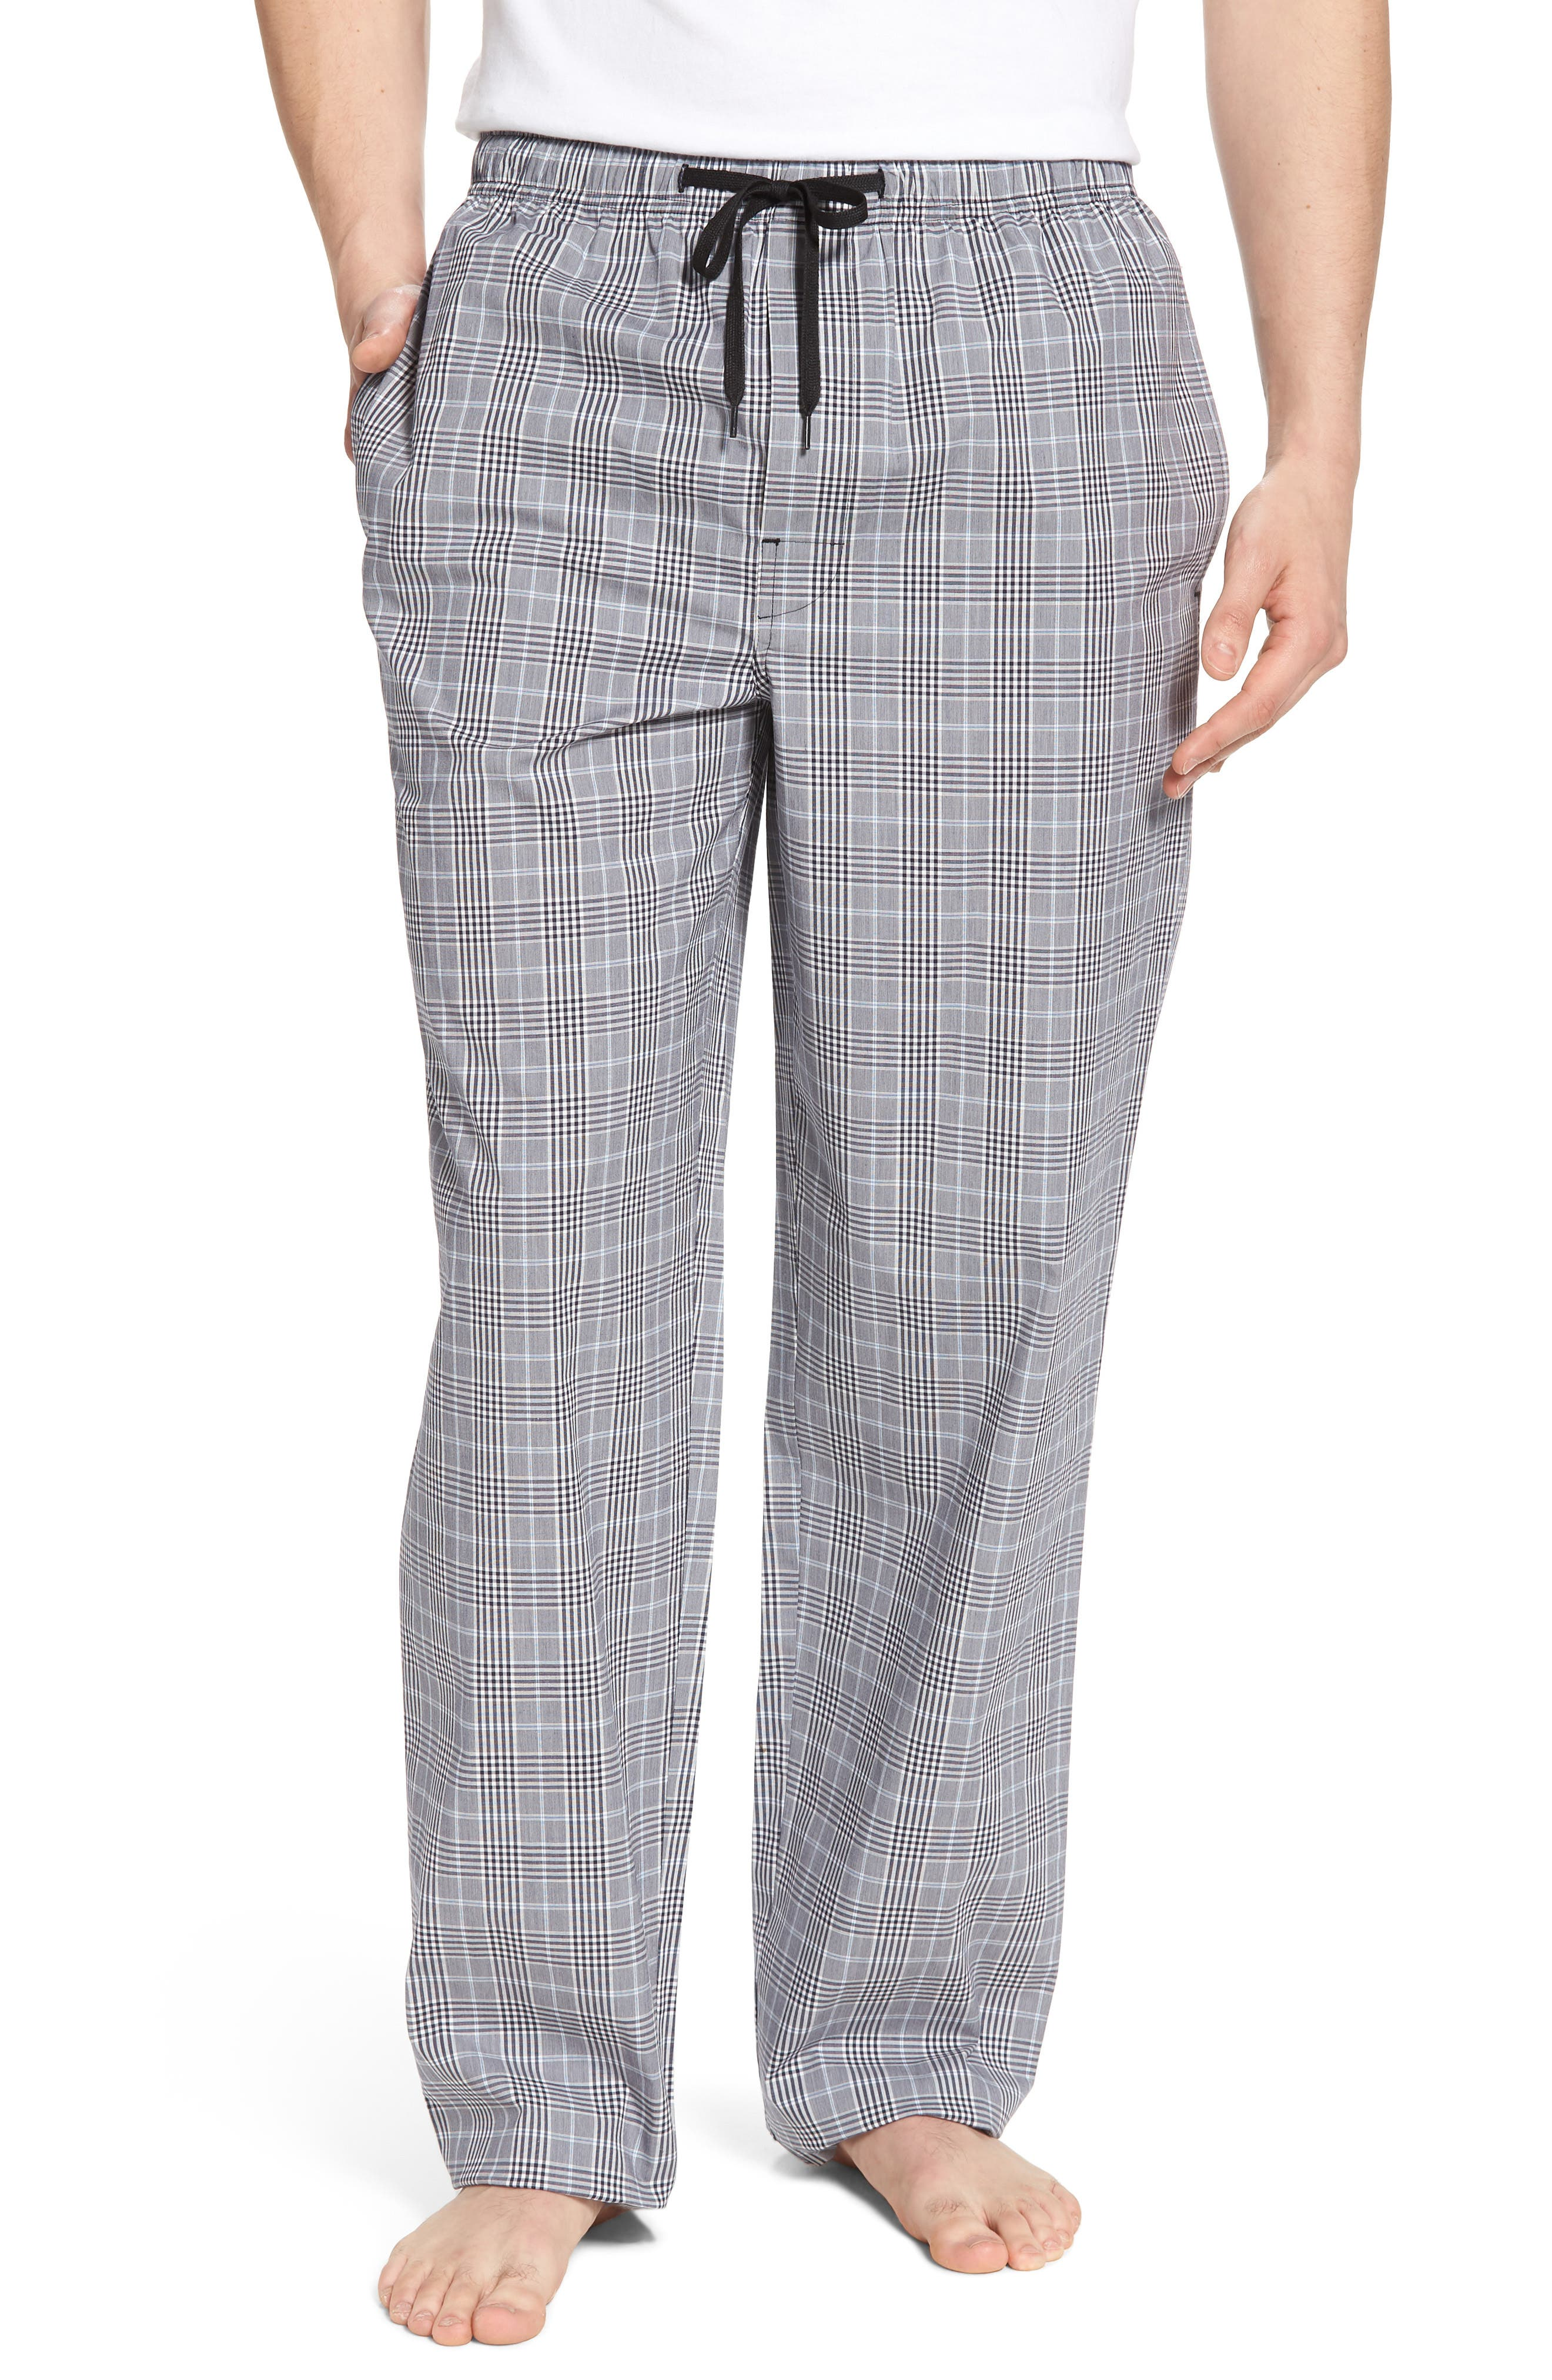 Charleston Lounge Pants,                             Main thumbnail 1, color,                             BLACK PLAID